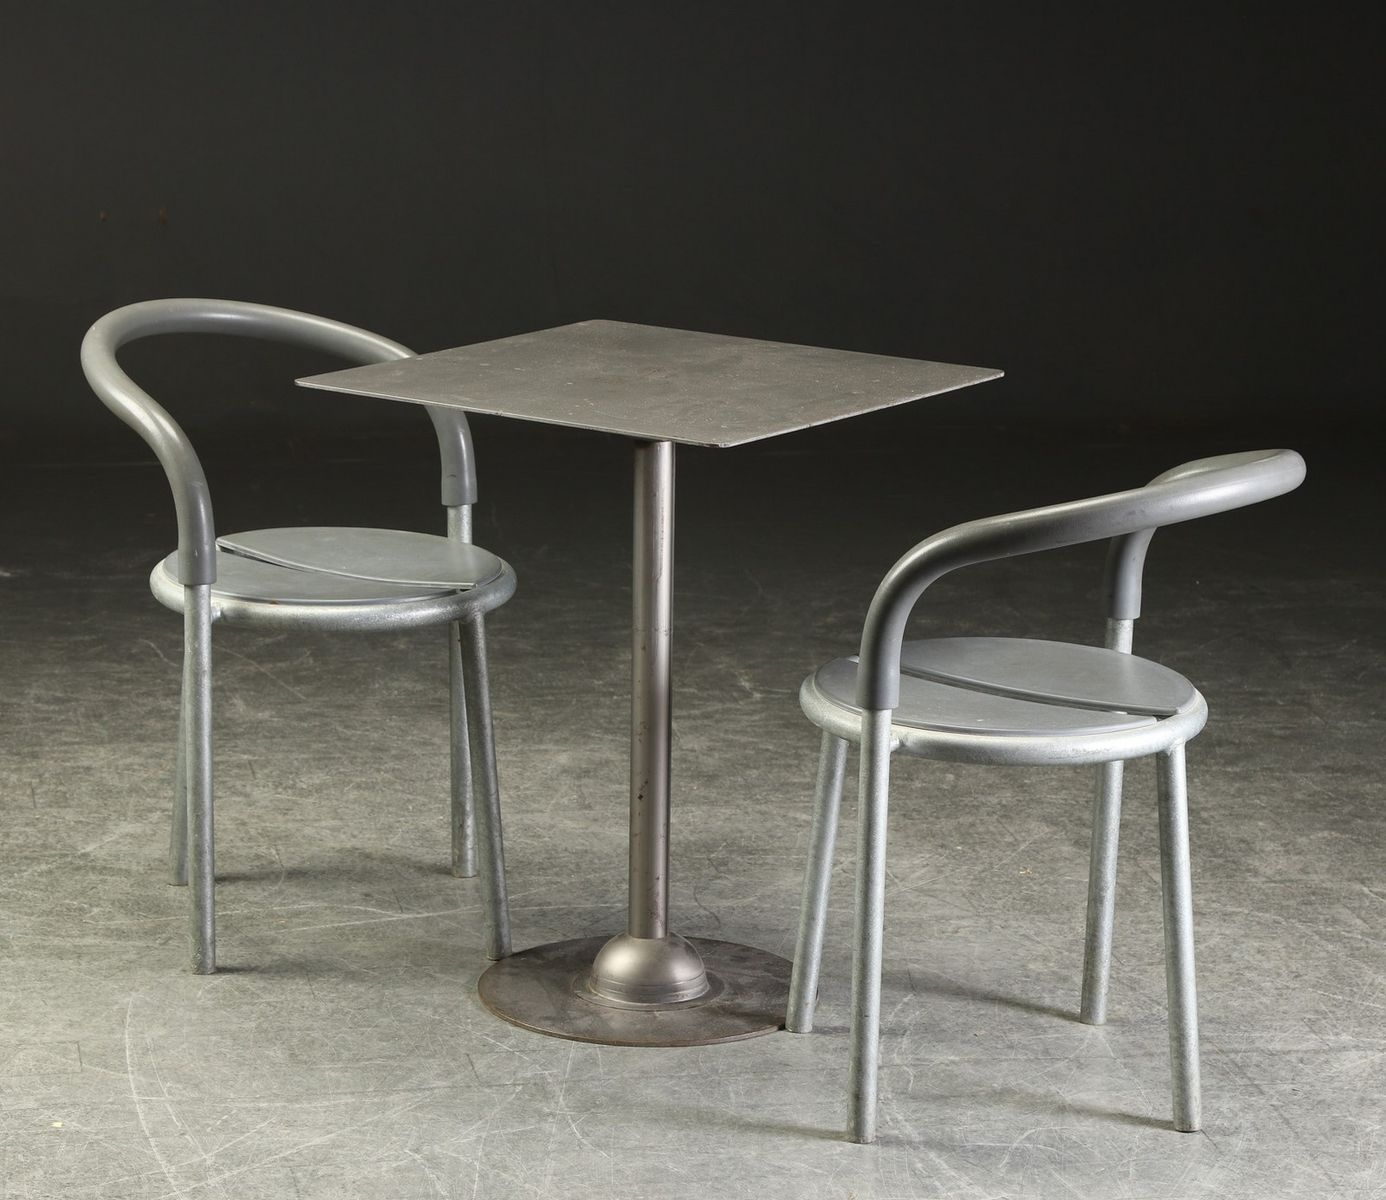 Table With 2 Chairs Vintage Metal Table 2 Chairs By Niels Gammelgaard Lars Mathiesen